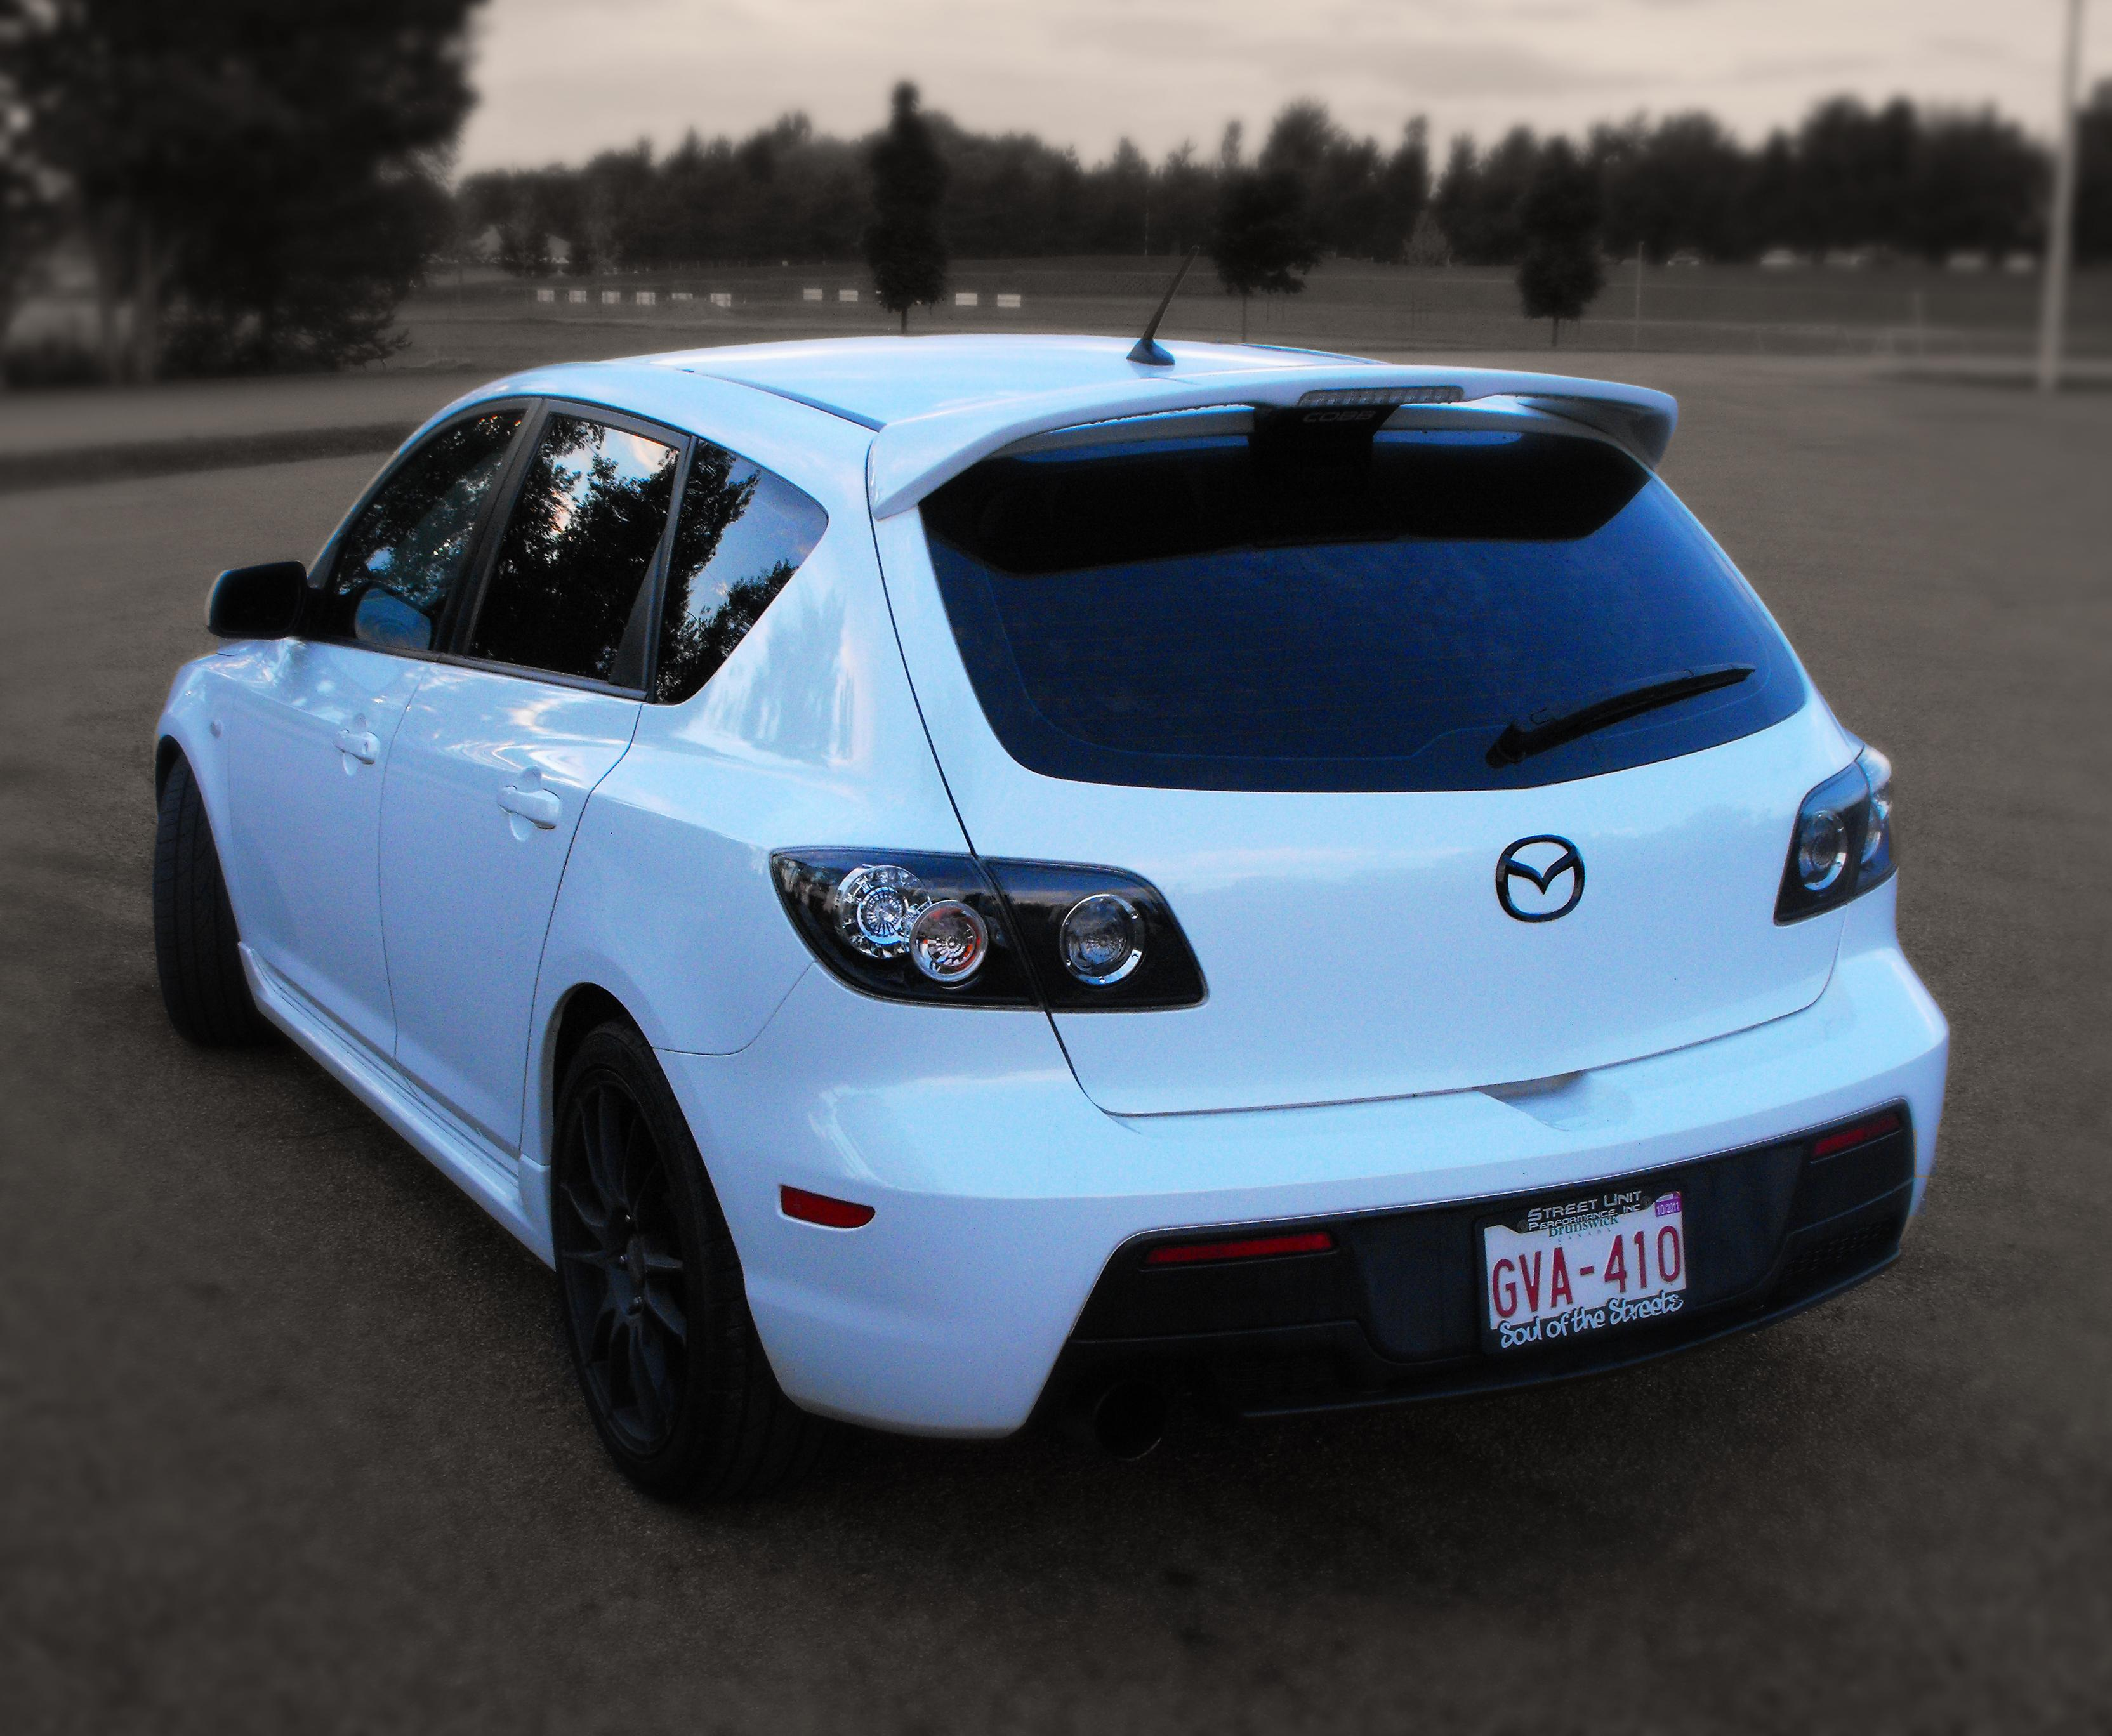 Nbspeed3 2007 Mazda Mazda3mazdaspeed3 Grand Touring